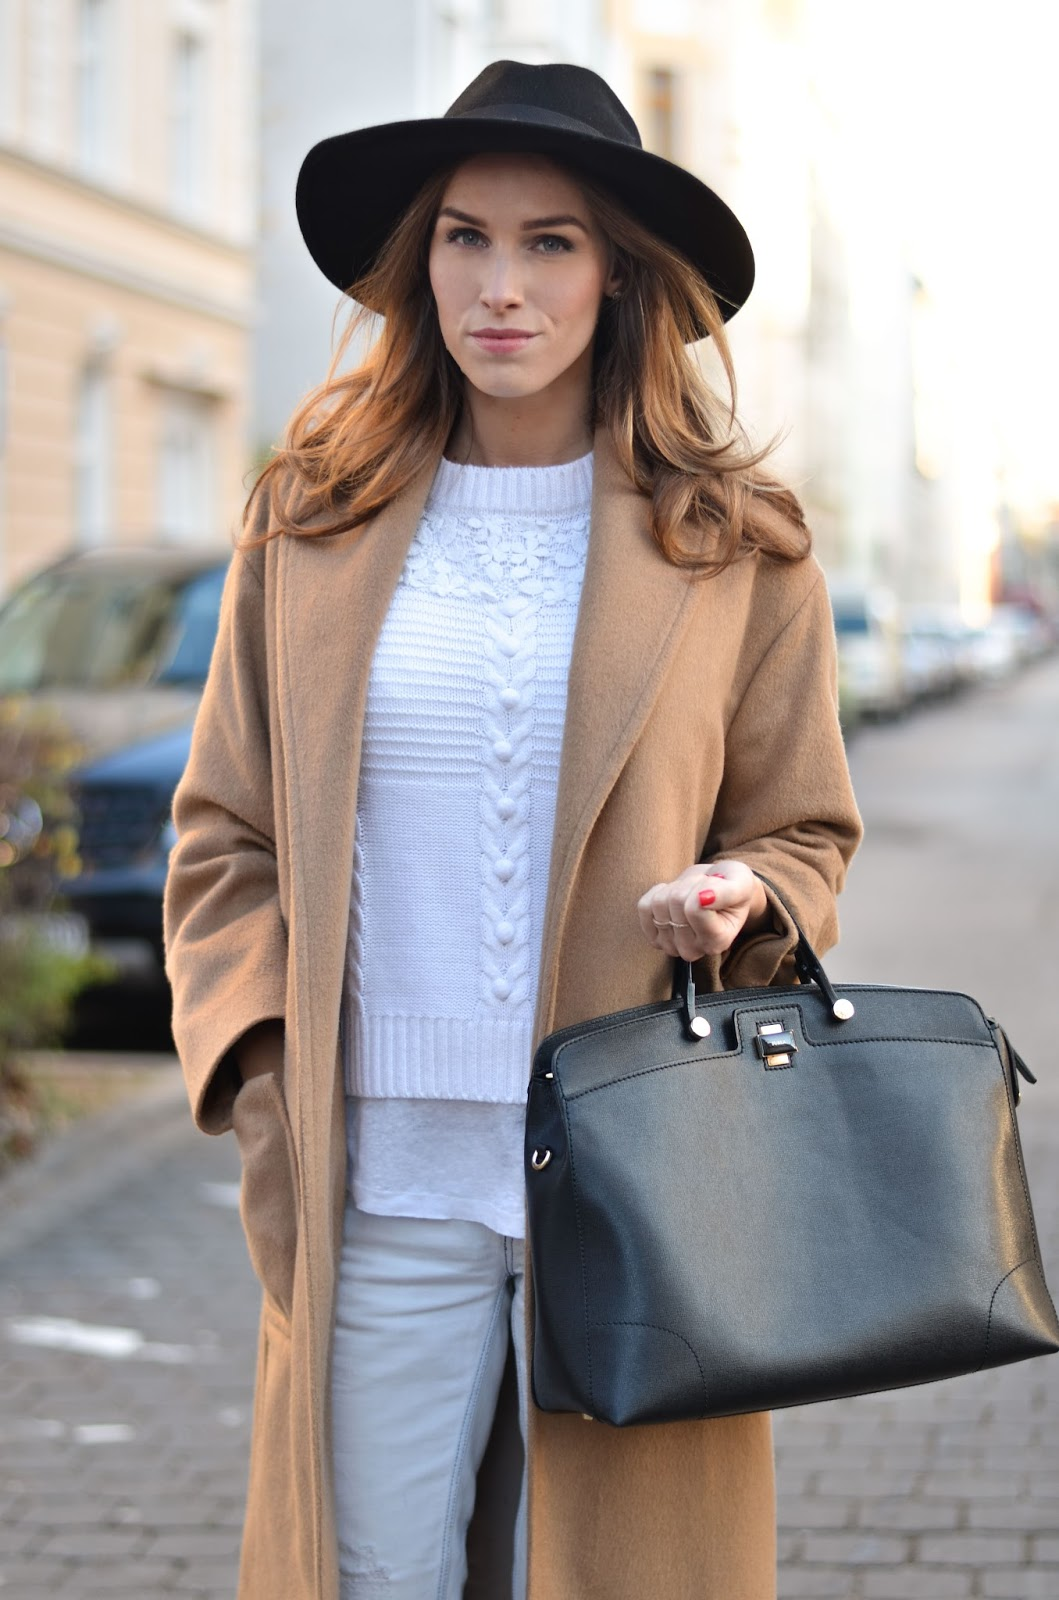 kristjaana mere camel coat black fedora hat white sweater ripped jeans casual winter fashion